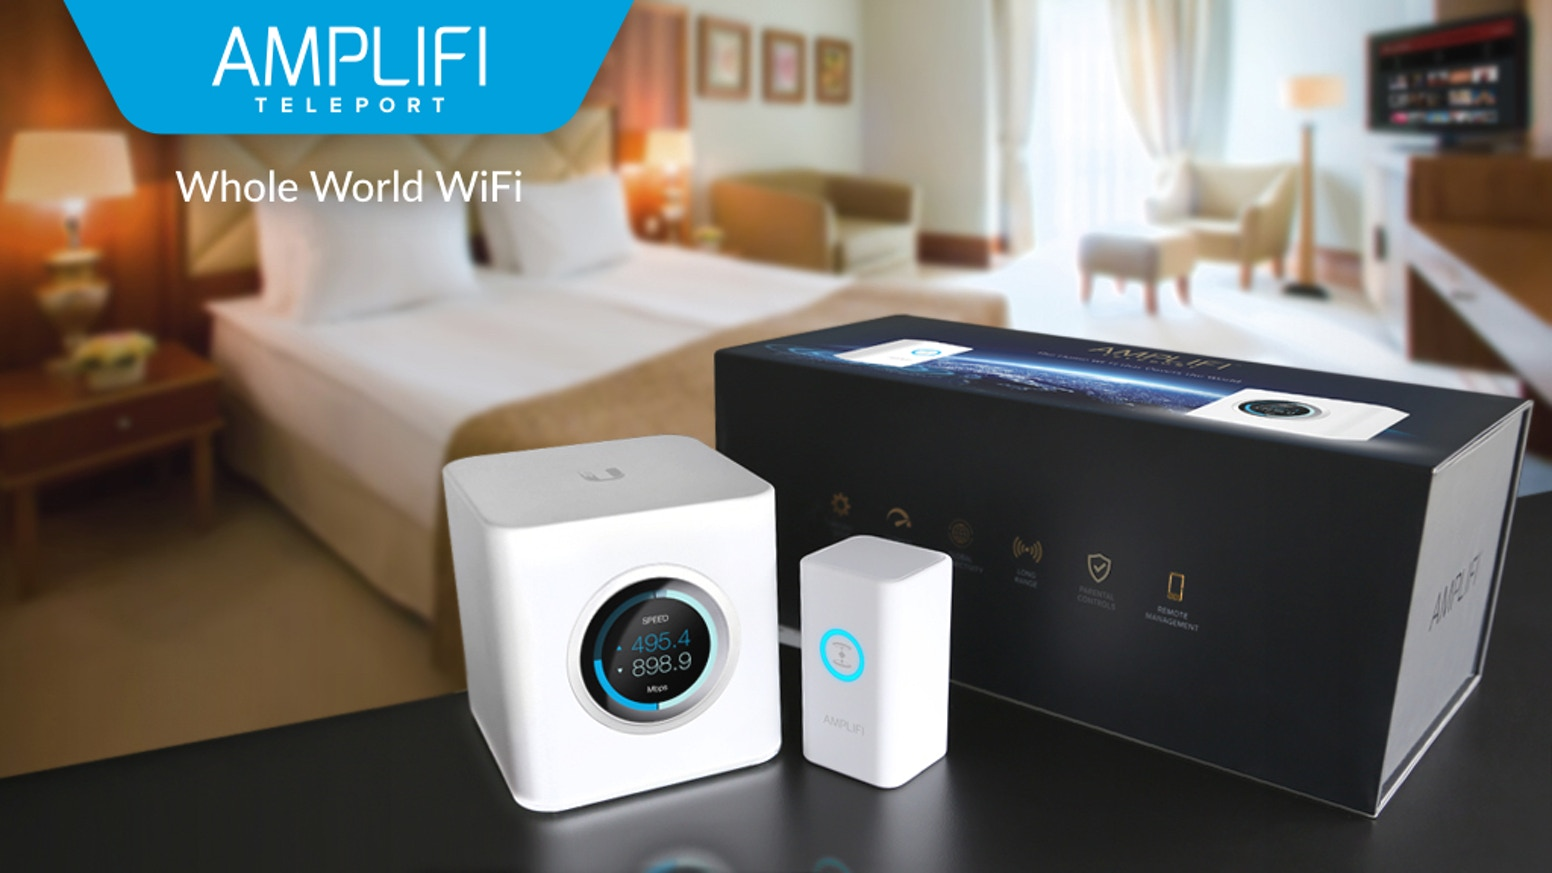 AmpliFi Teleport : The Home Wi-Fi that Covers the World by